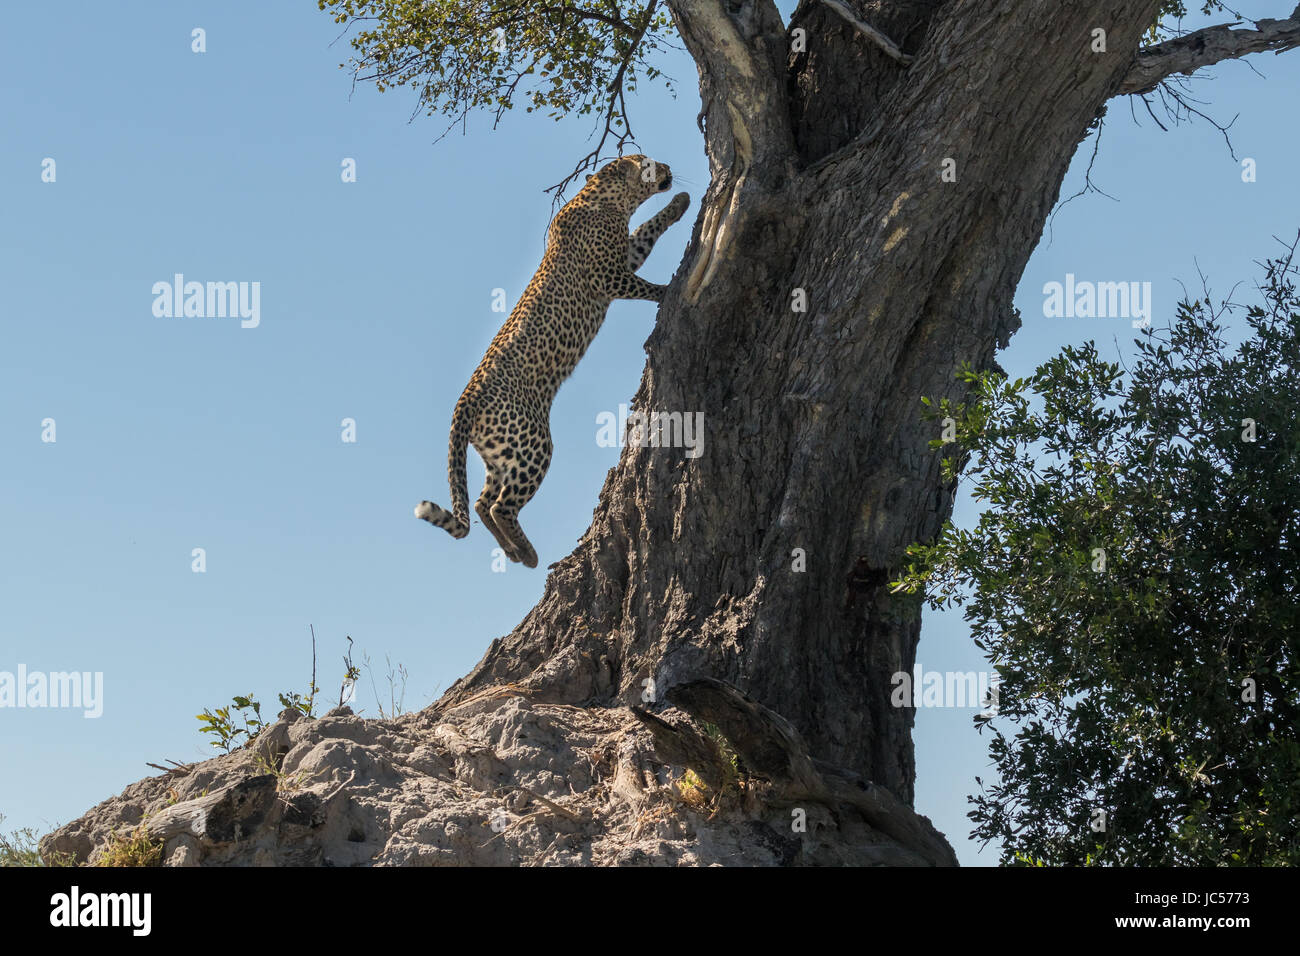 Leopard leaping into tree - Stock Image